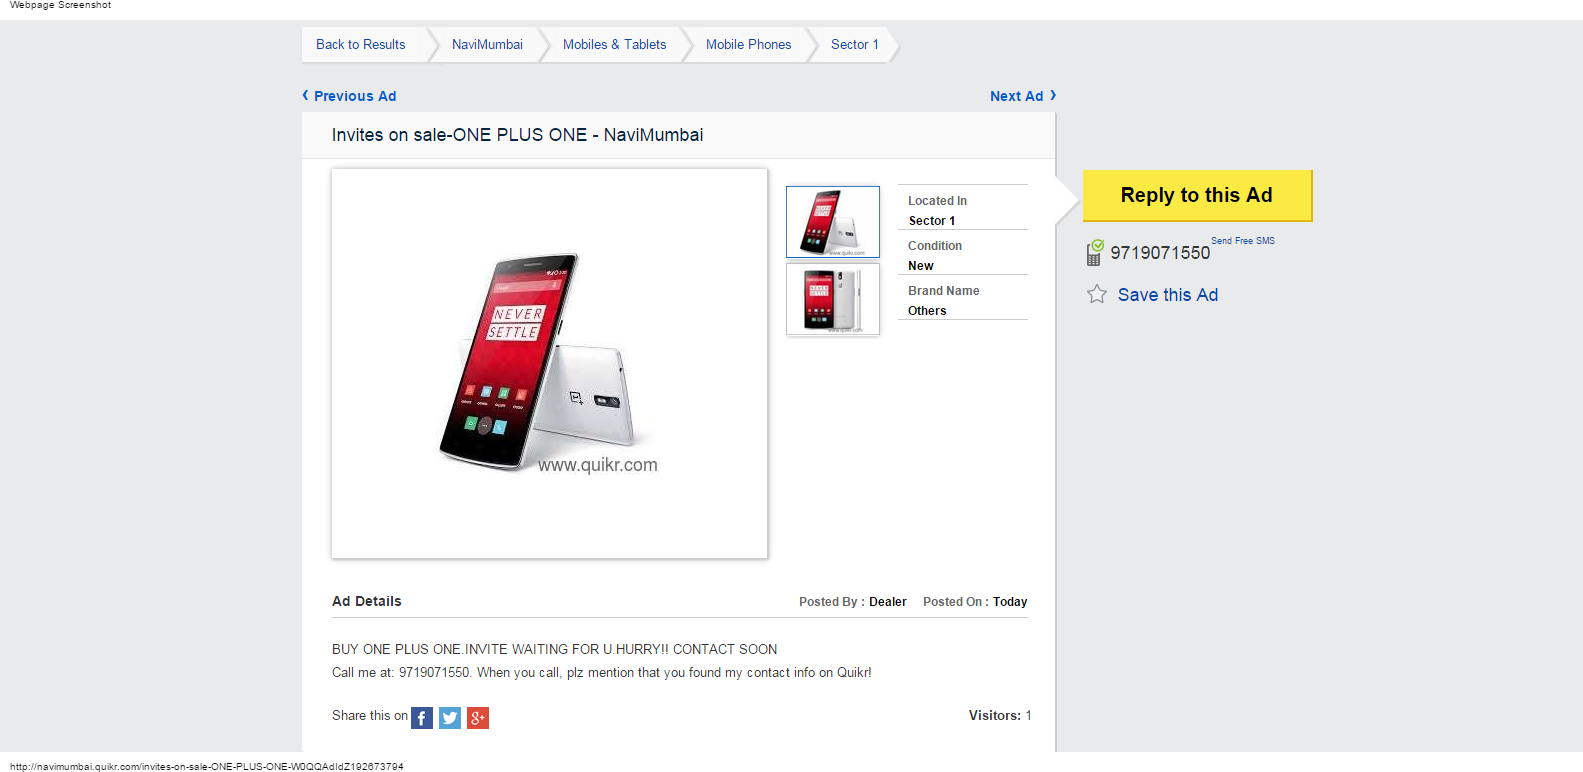 invites on sale-ONE PLUS ONE NaviMumbai Quikr Classifieds.png